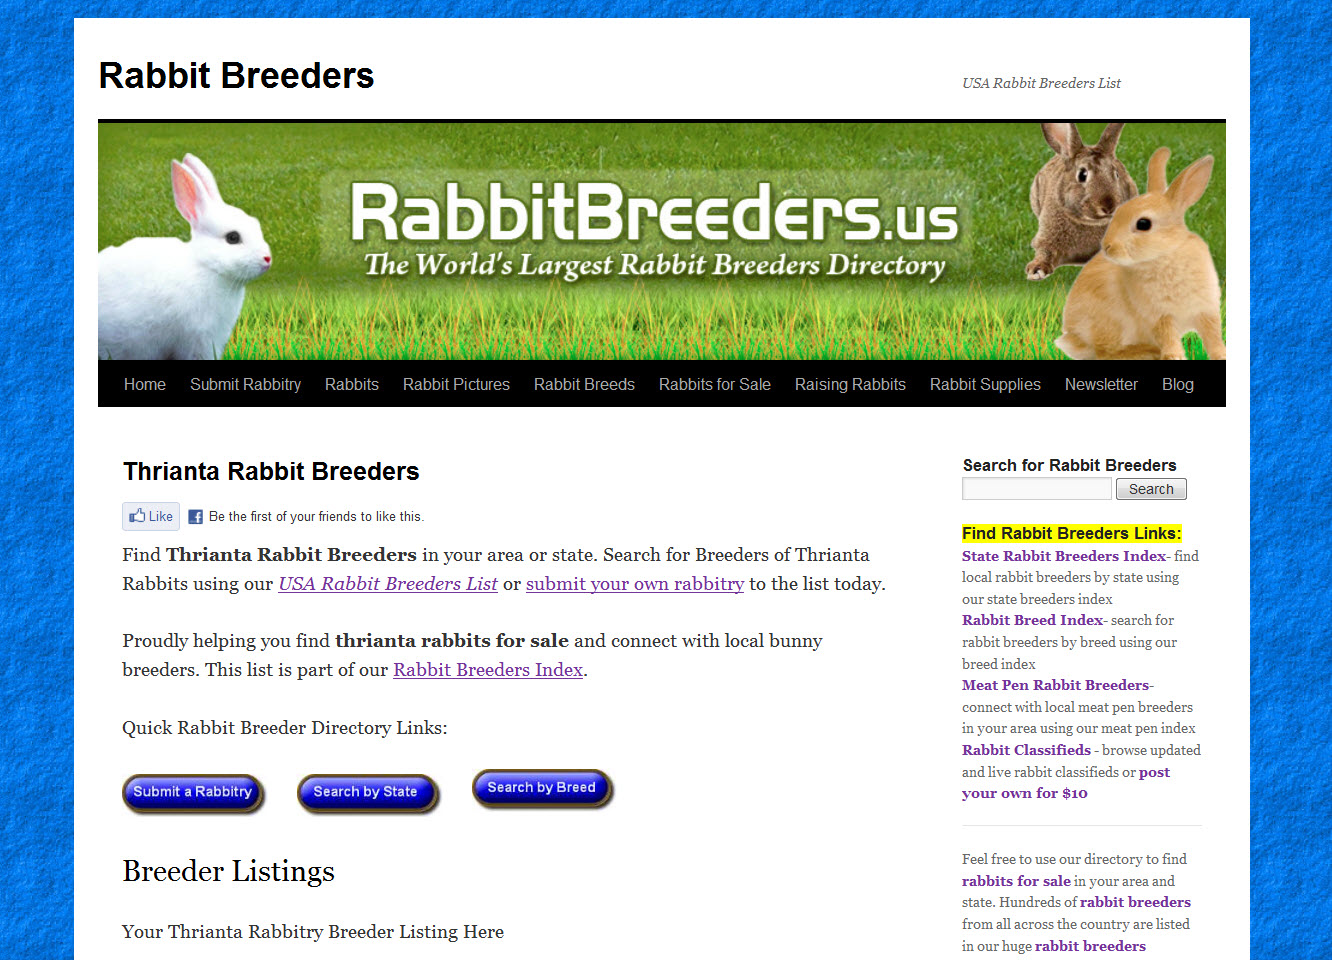 Thrianta Rabbit Breeders